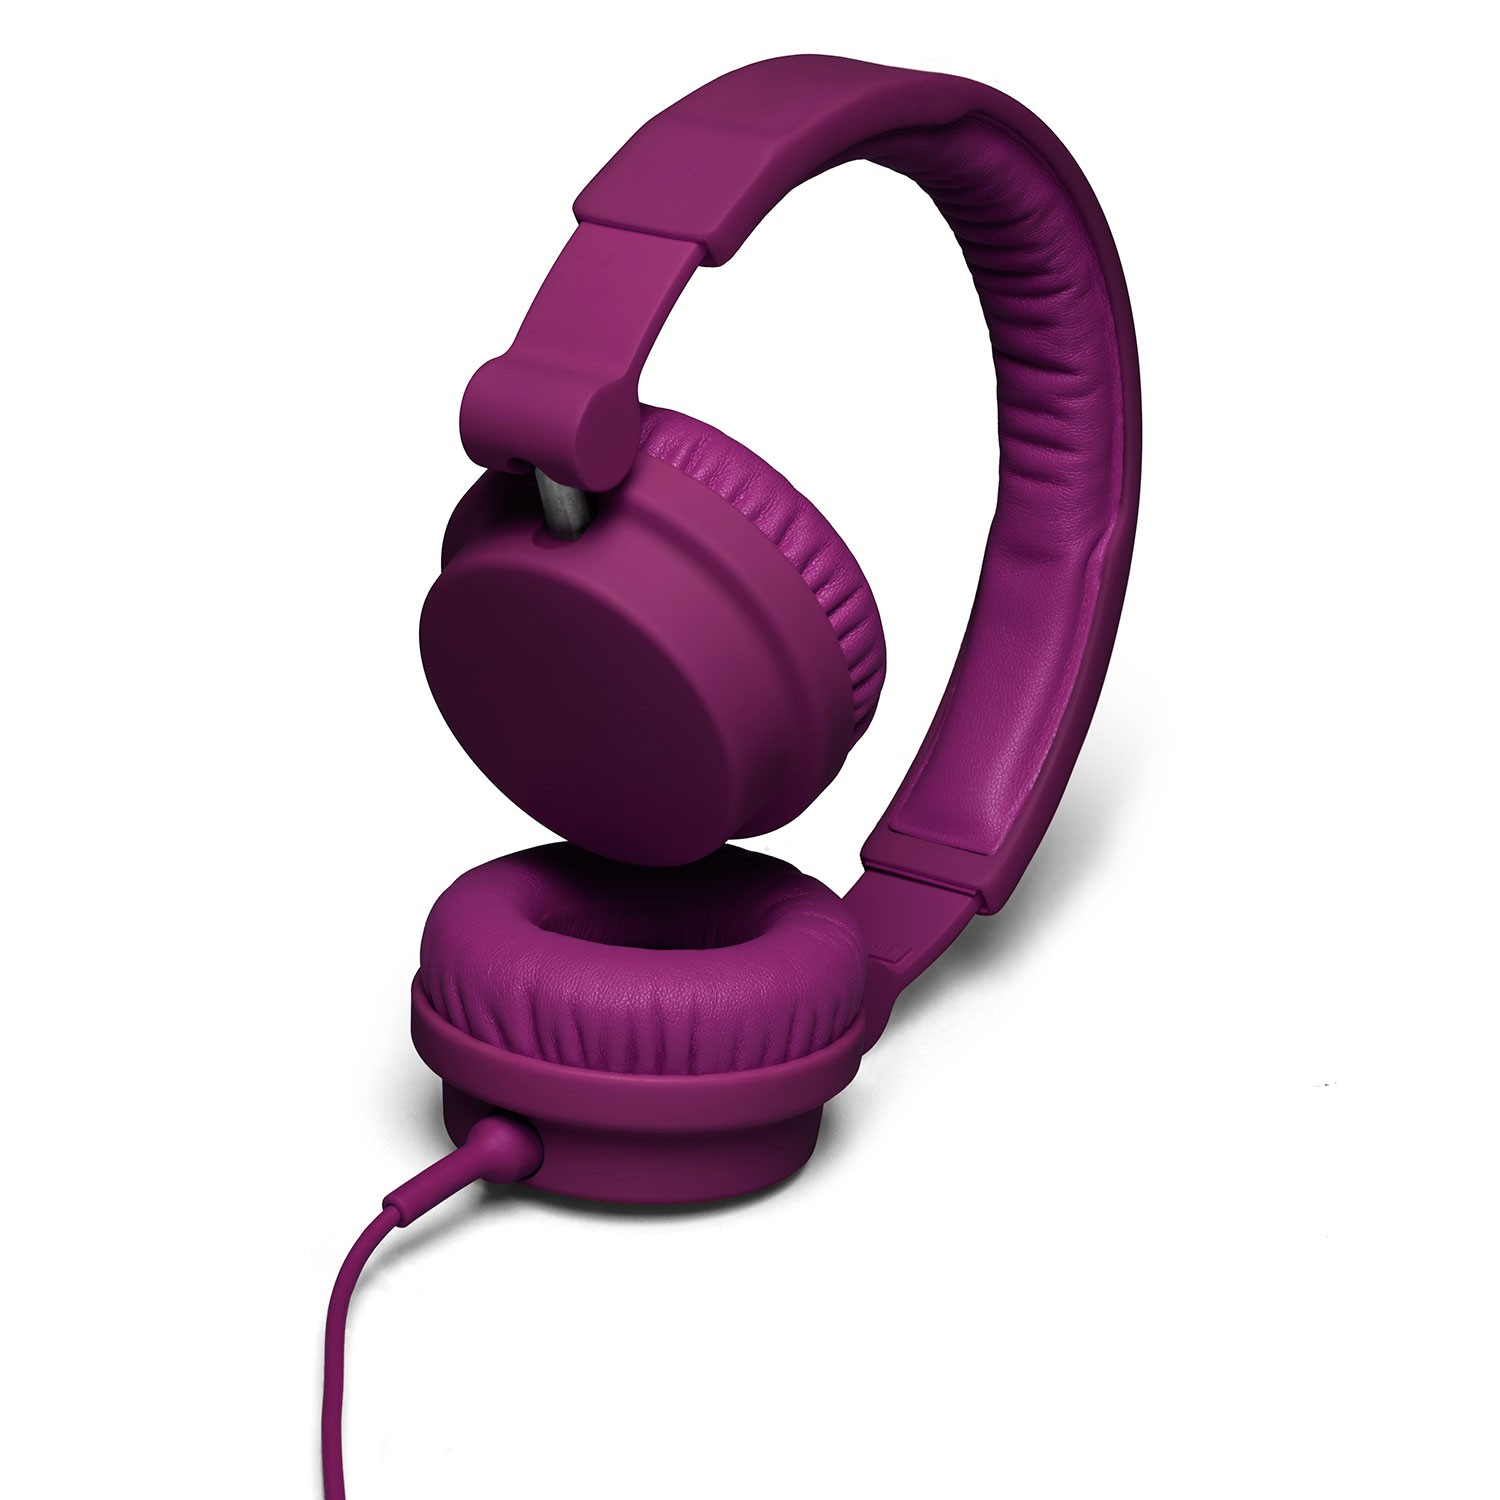 Sluchátka Urbanears Zinken grape